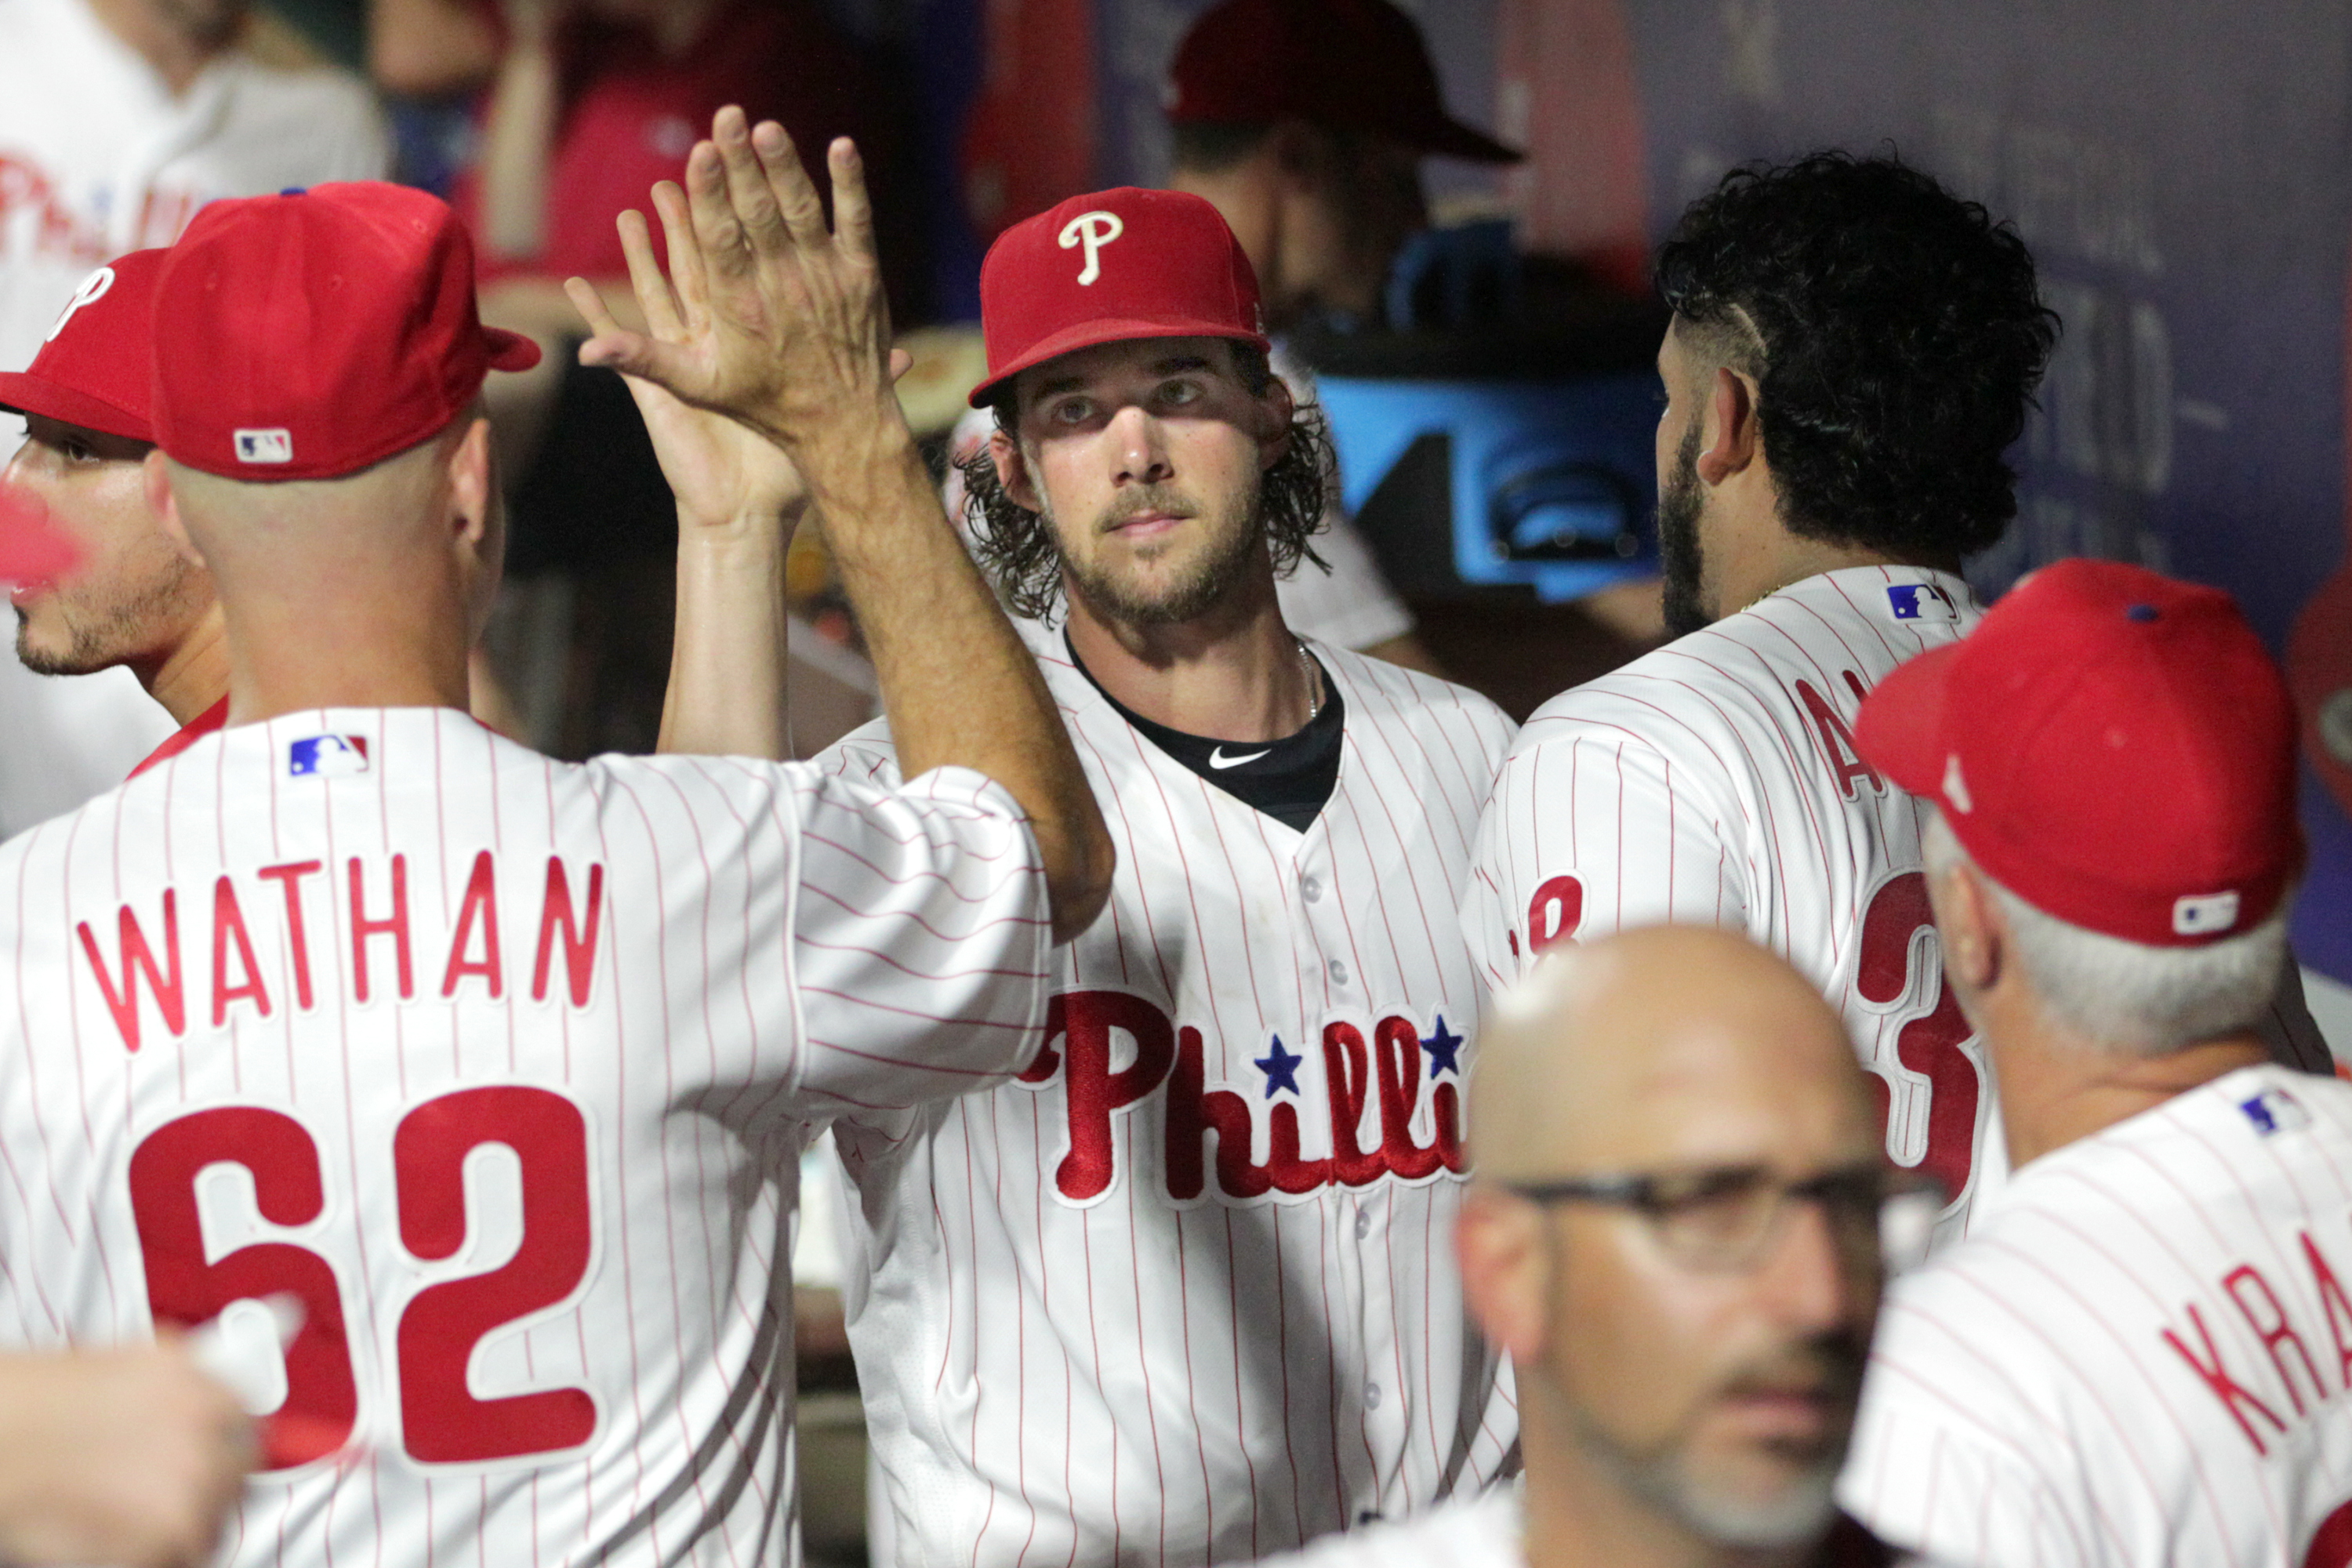 Aaron Nola, center, of the Phillies is congratulated by teammates and coaches including coach Dusty Wathan, left, after pitching his final inning agaist the Mets at Citizens Bank Park on August 17, 2018.